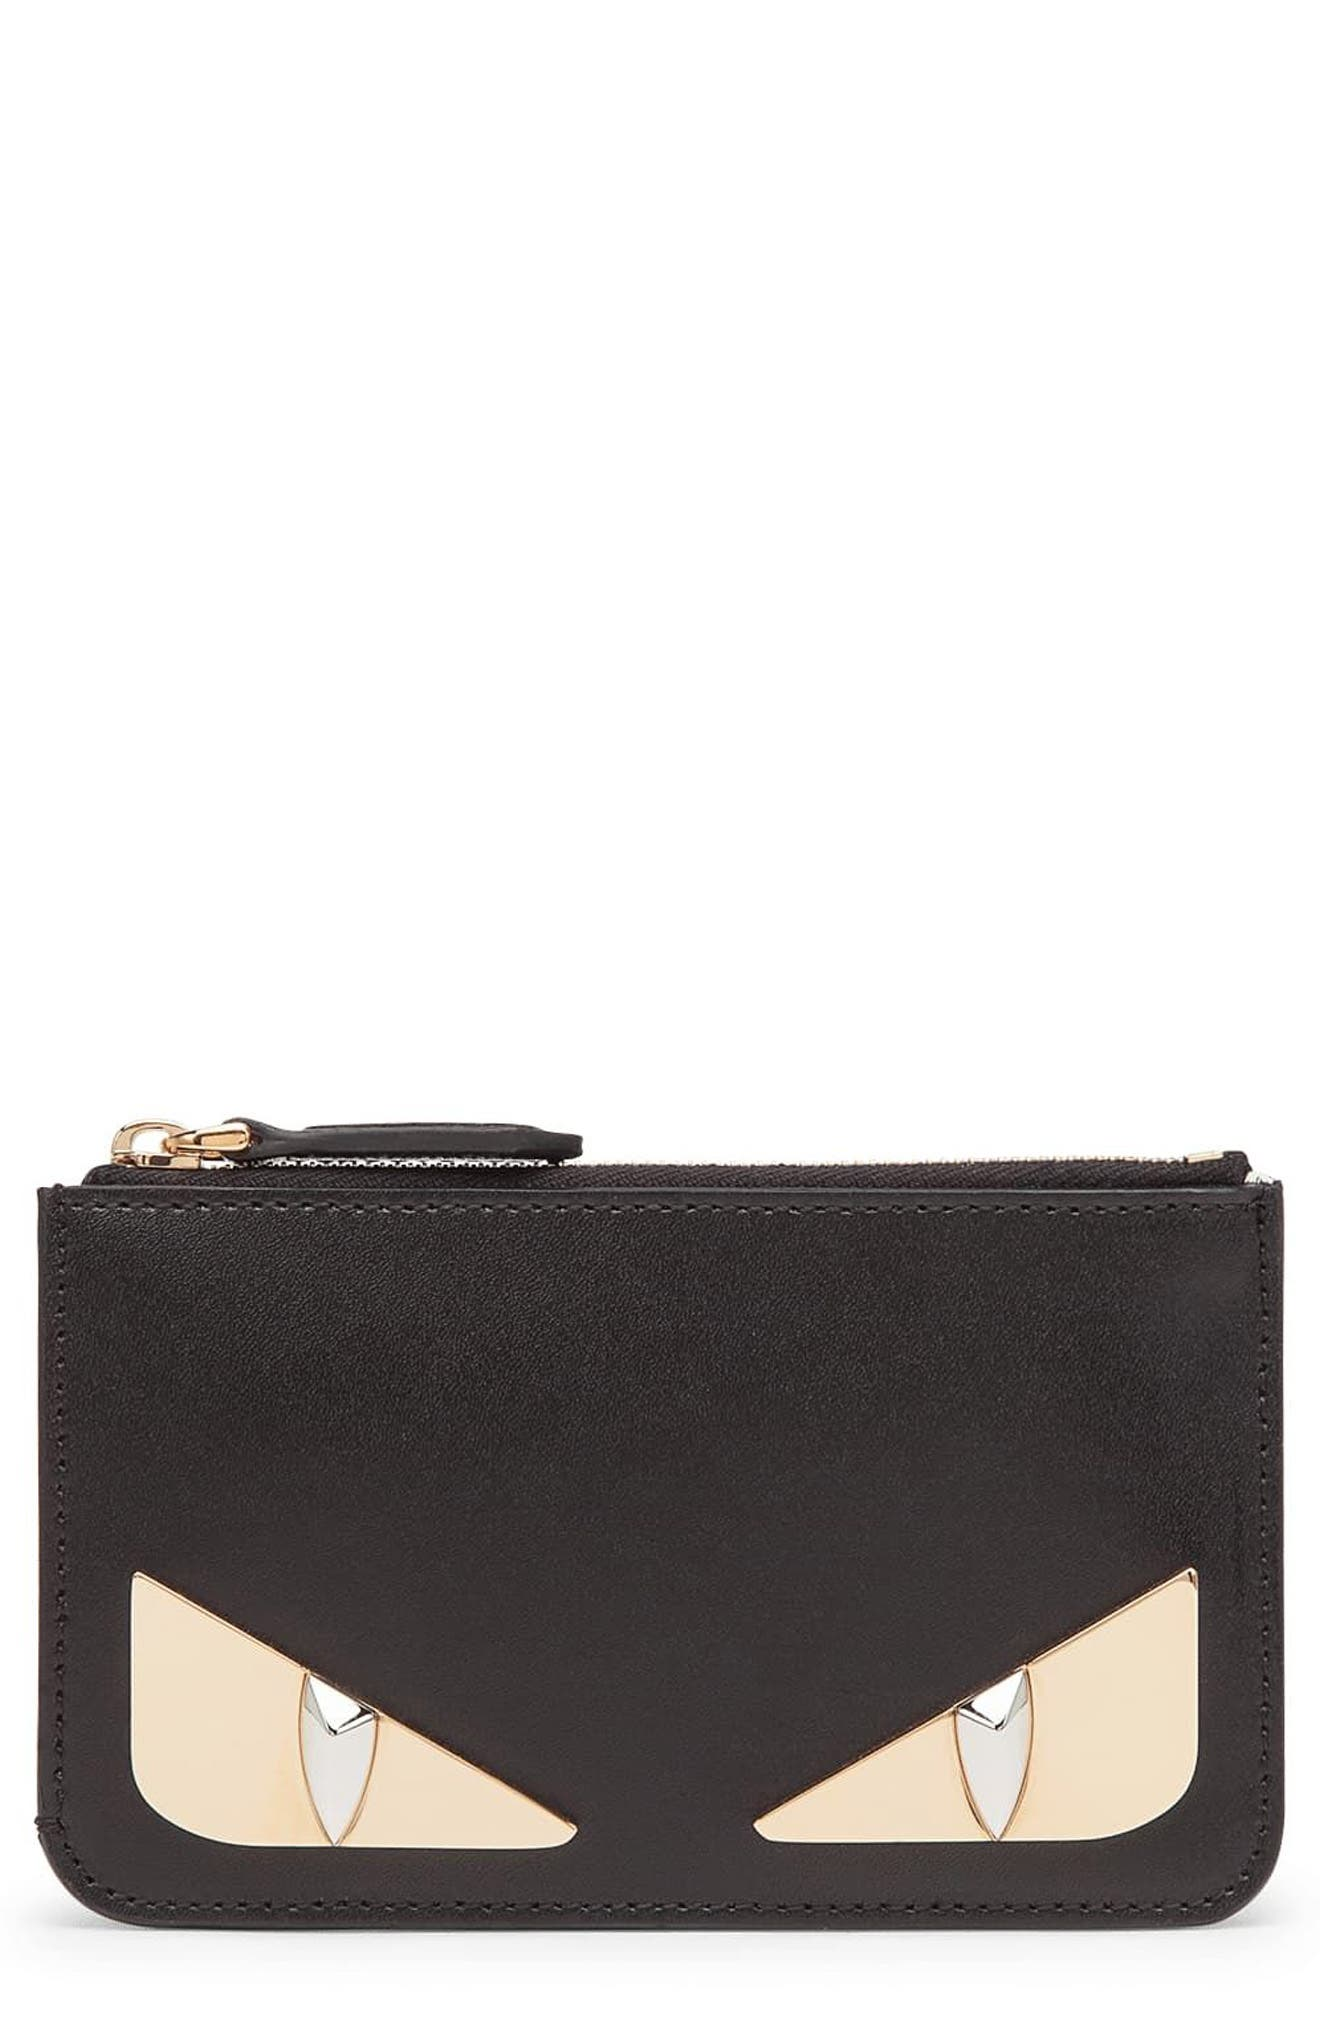 Monster Leather Key Pouch,                         Main,                         color, NERO/ ORO SOFT